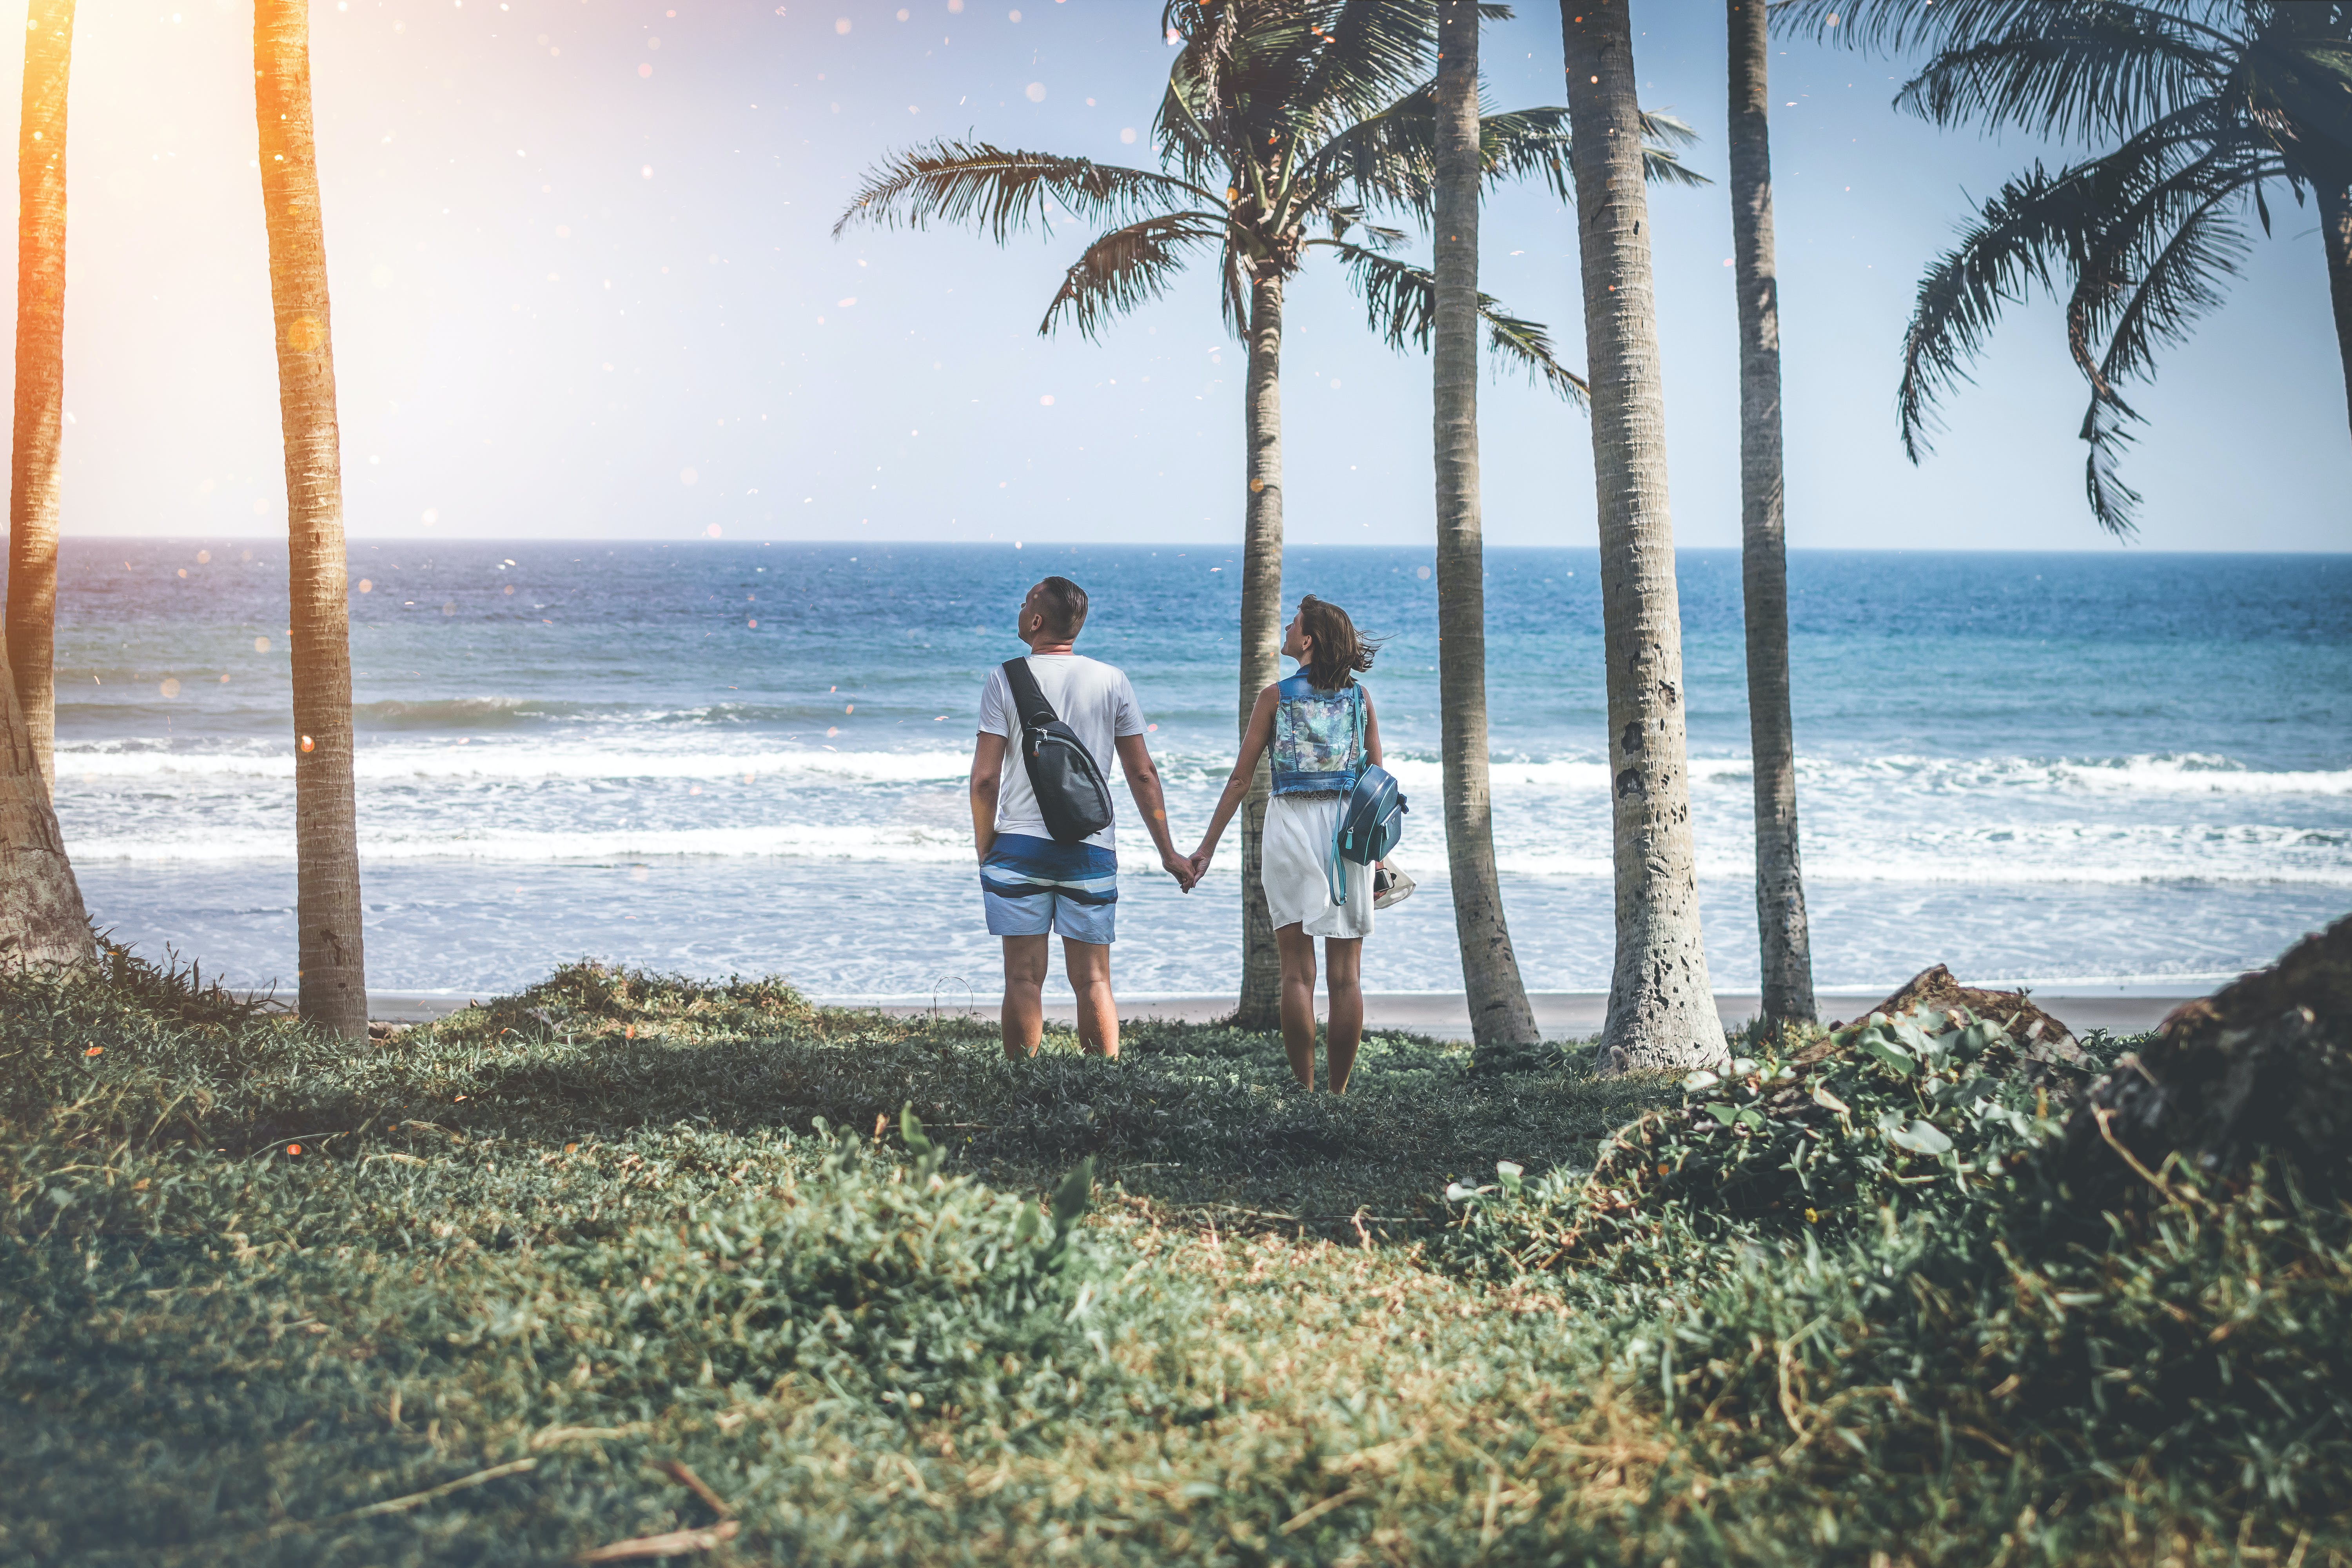 Man and Woman Holding Hand Near Beach Shore Under Sunny Sky